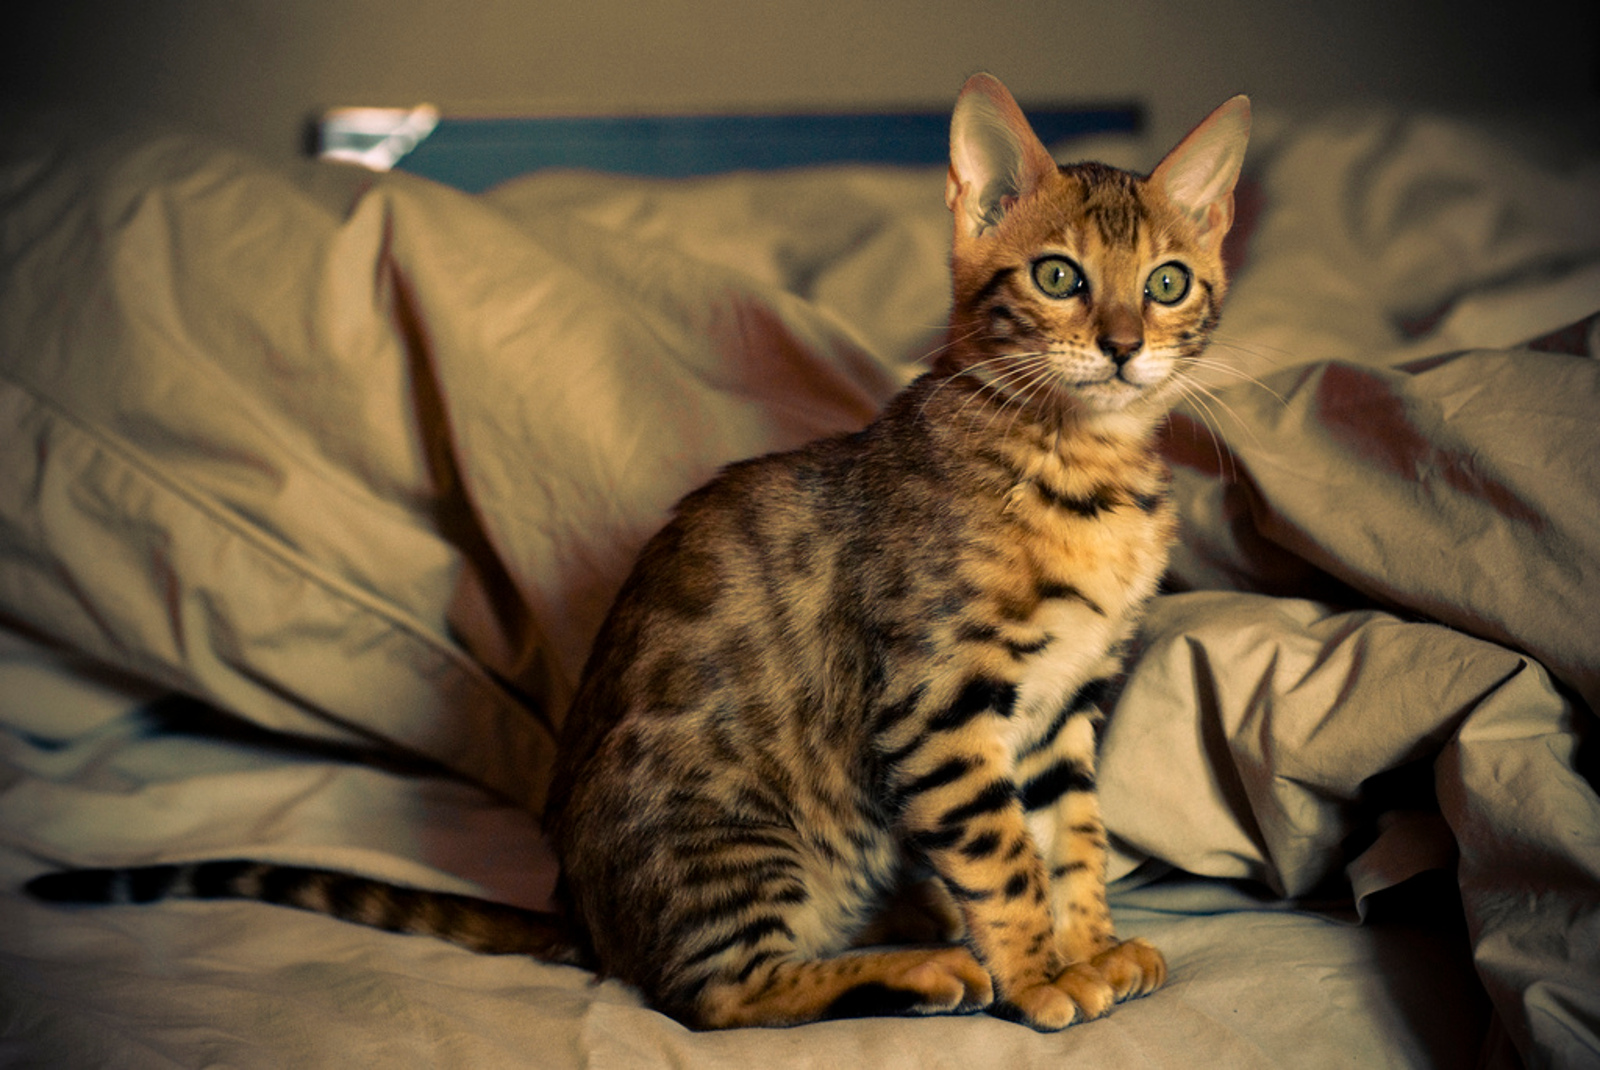 Living With Hybrid Exotic Cats: Real Guardians Weigh in on Whether Breeding These Animals is Responsible